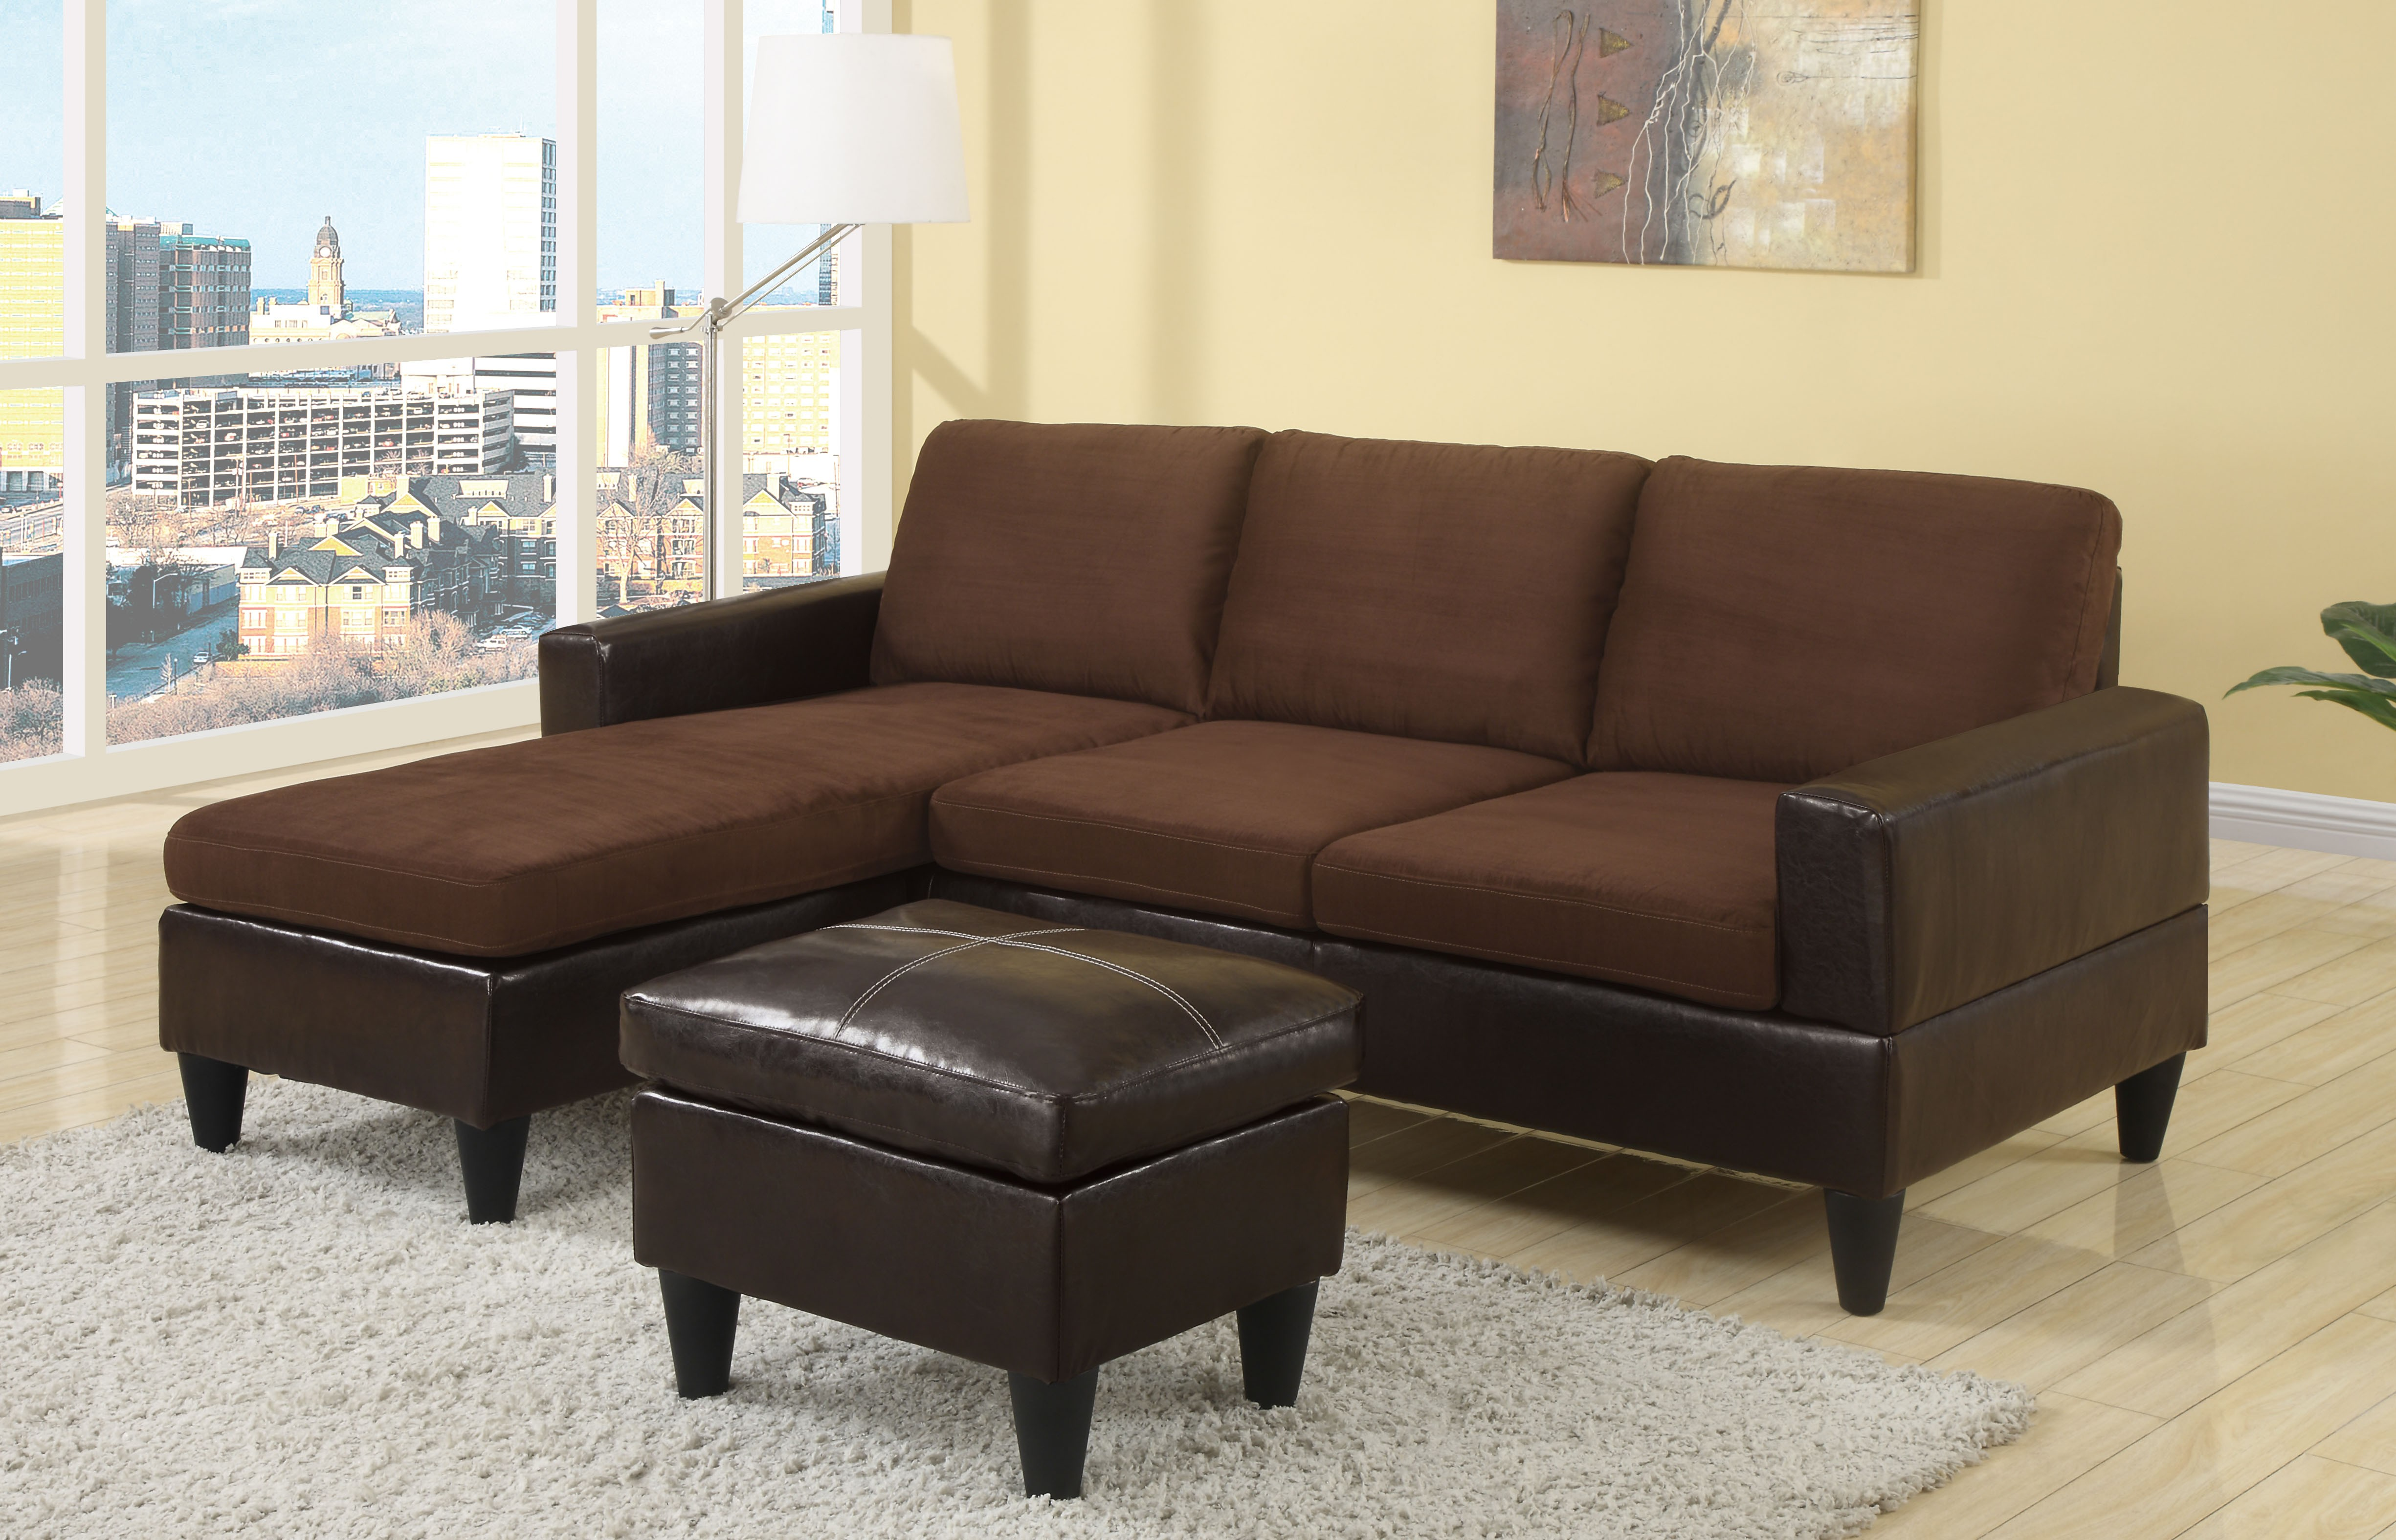 montreal sectional sofa in slate throw covers target poundex 2 pcs set loveseat bobkona furniture